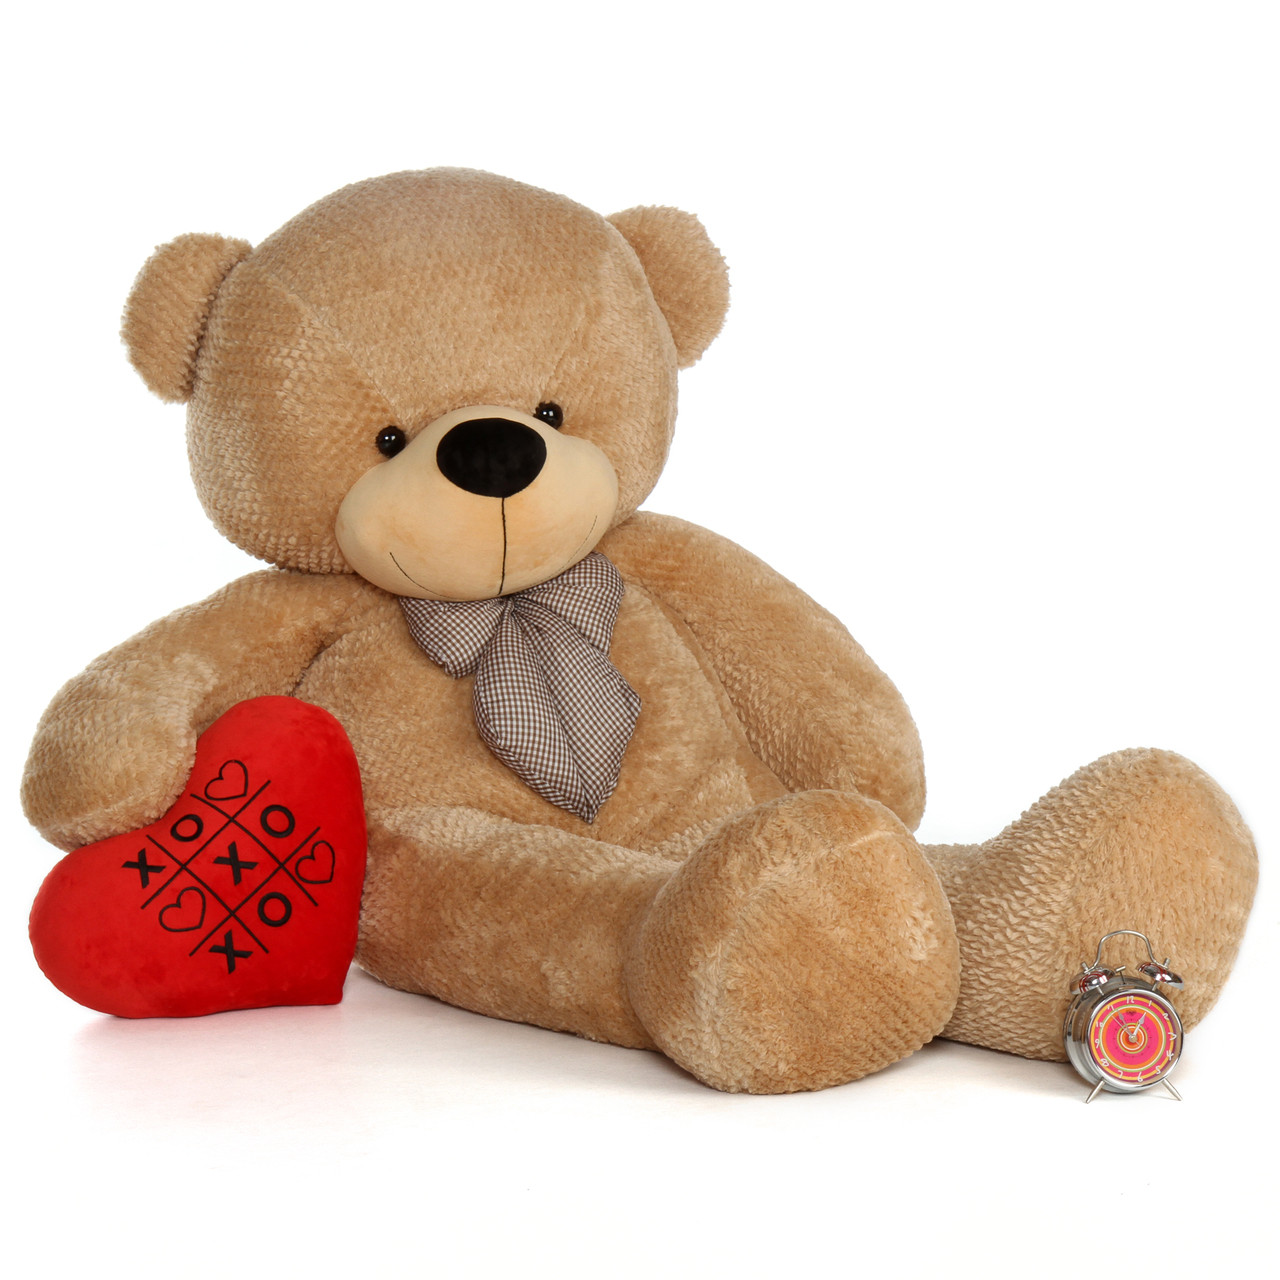 72in Huge Life Size Amber Valentine S Day Teddy Bear Beautiful Xoxo